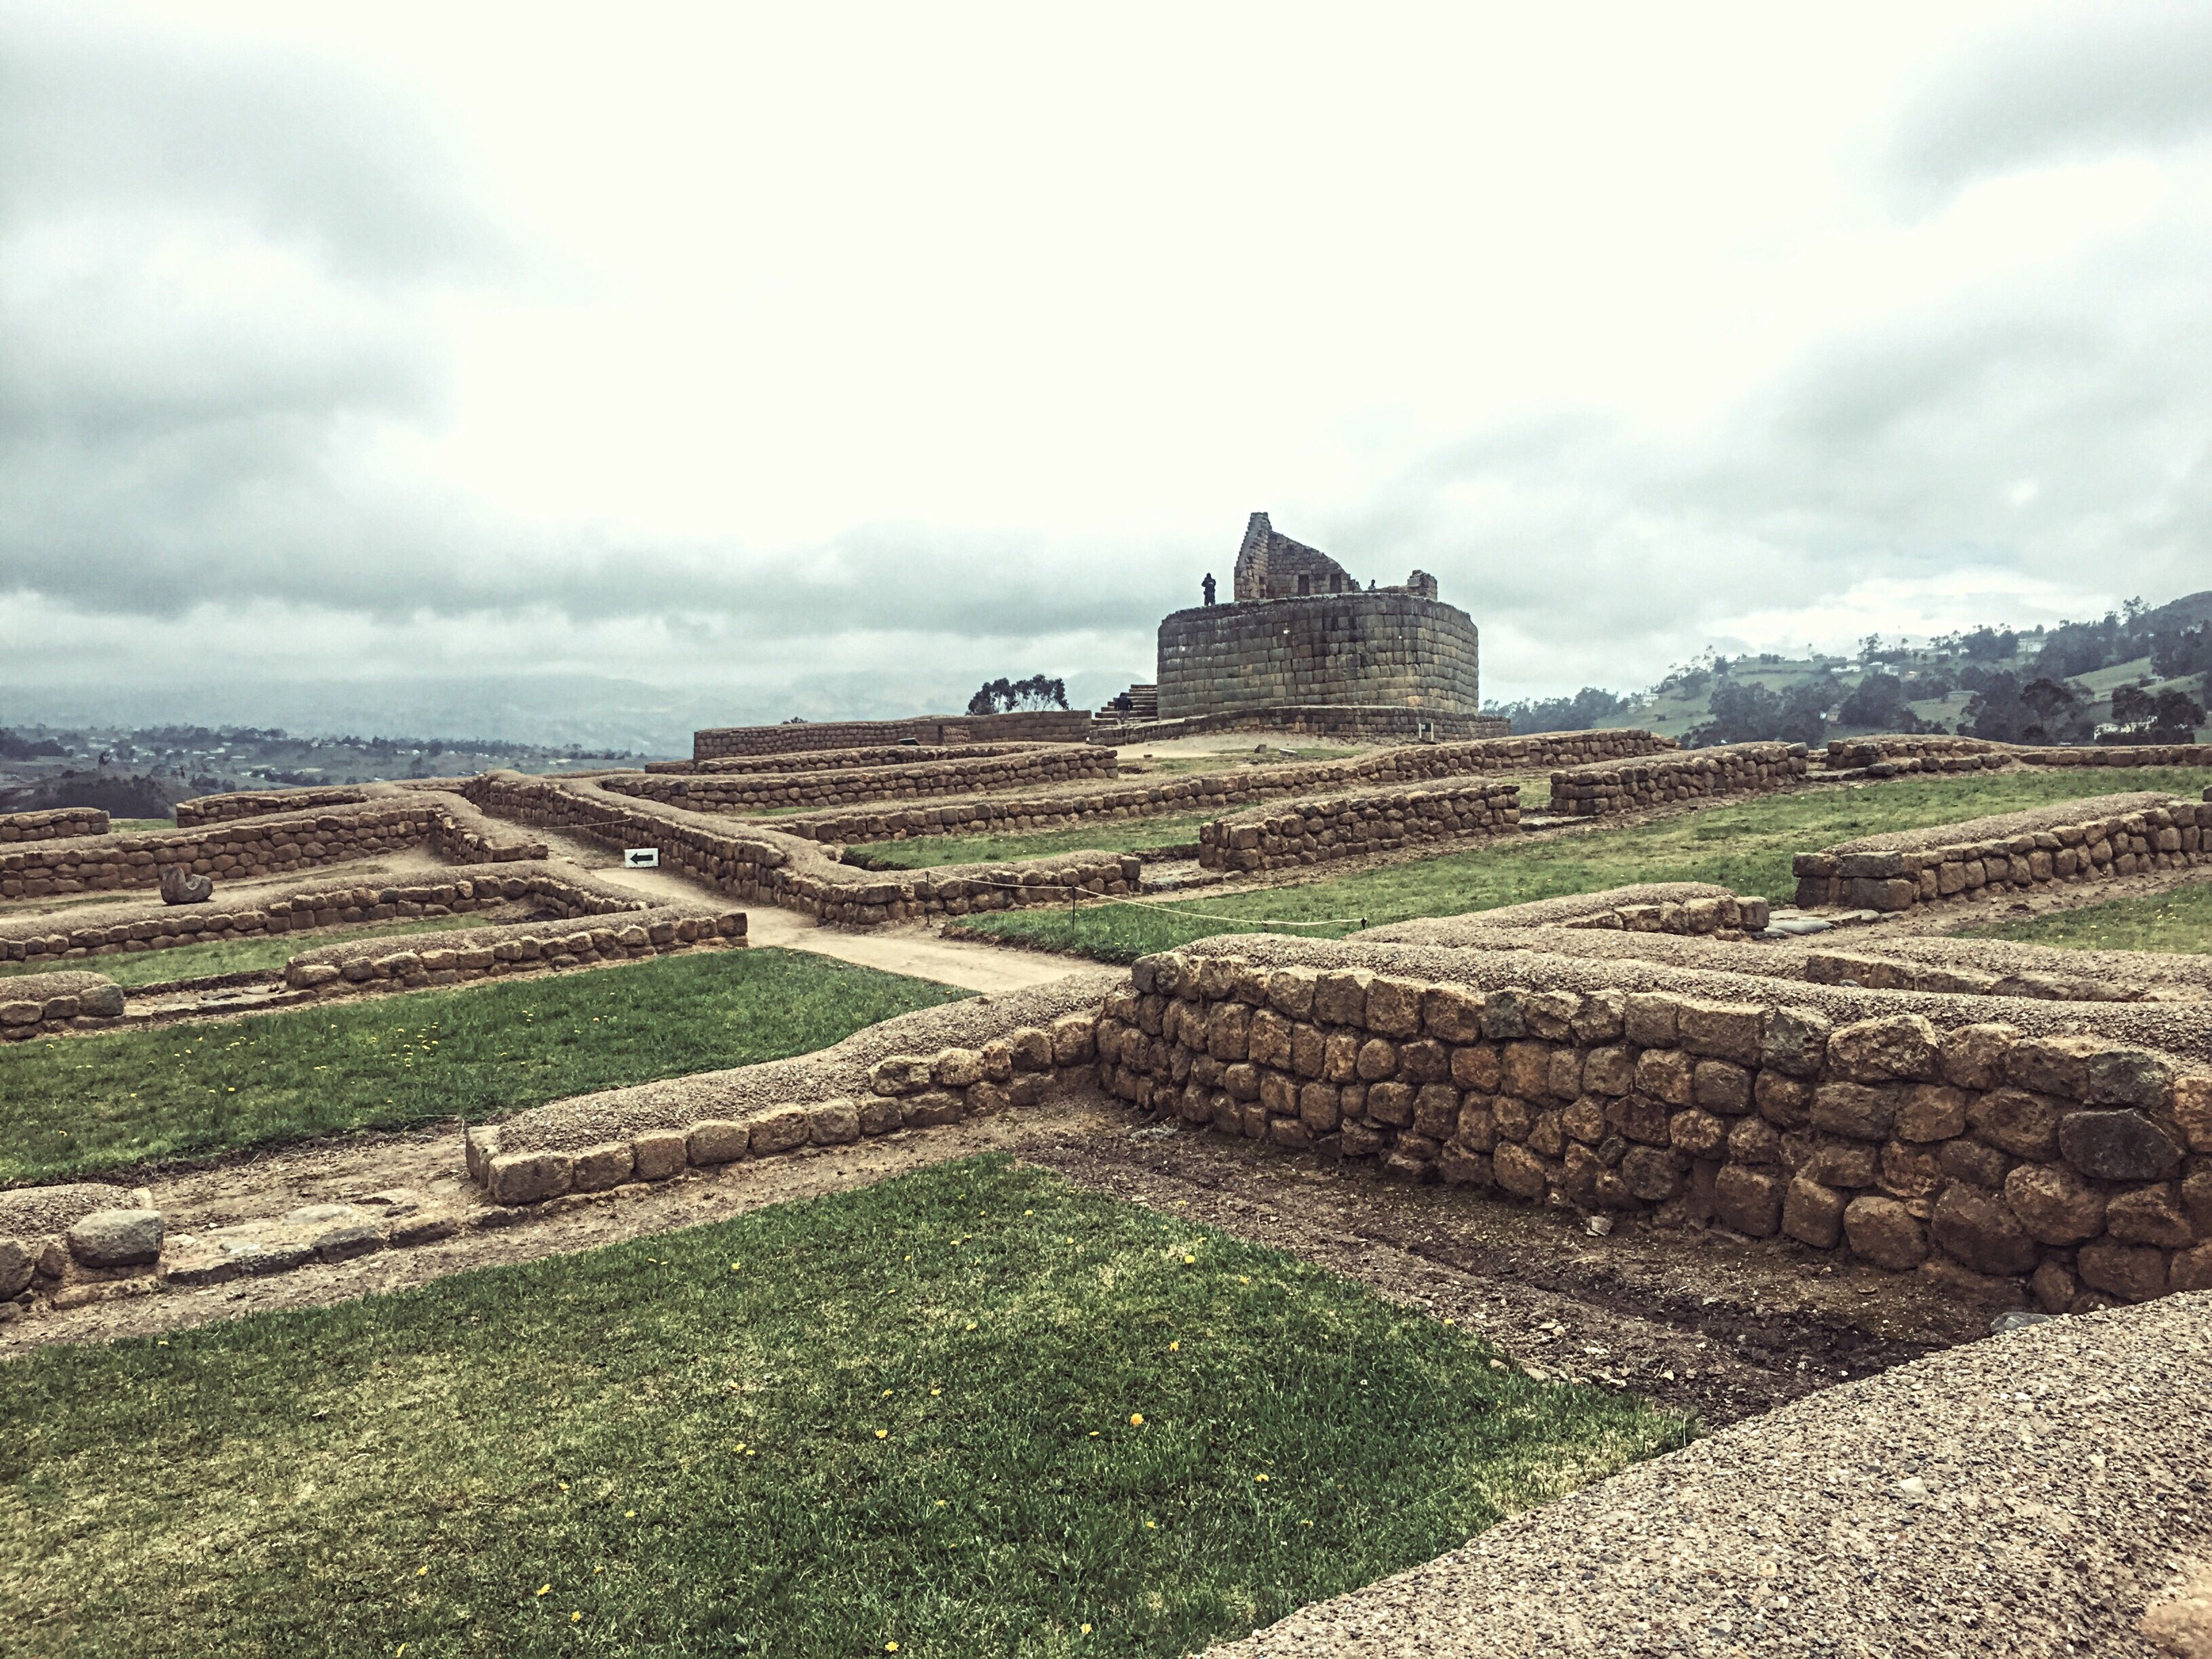 sky, architecture, built structure, history, cloud - sky, landscape, old ruin, ancient, the past, tranquility, cloud, cloudy, tranquil scene, travel destinations, grass, nature, scenics, castle, day, tourism, hill, outdoors, no people, beauty in nature, rural scene, non-urban scene